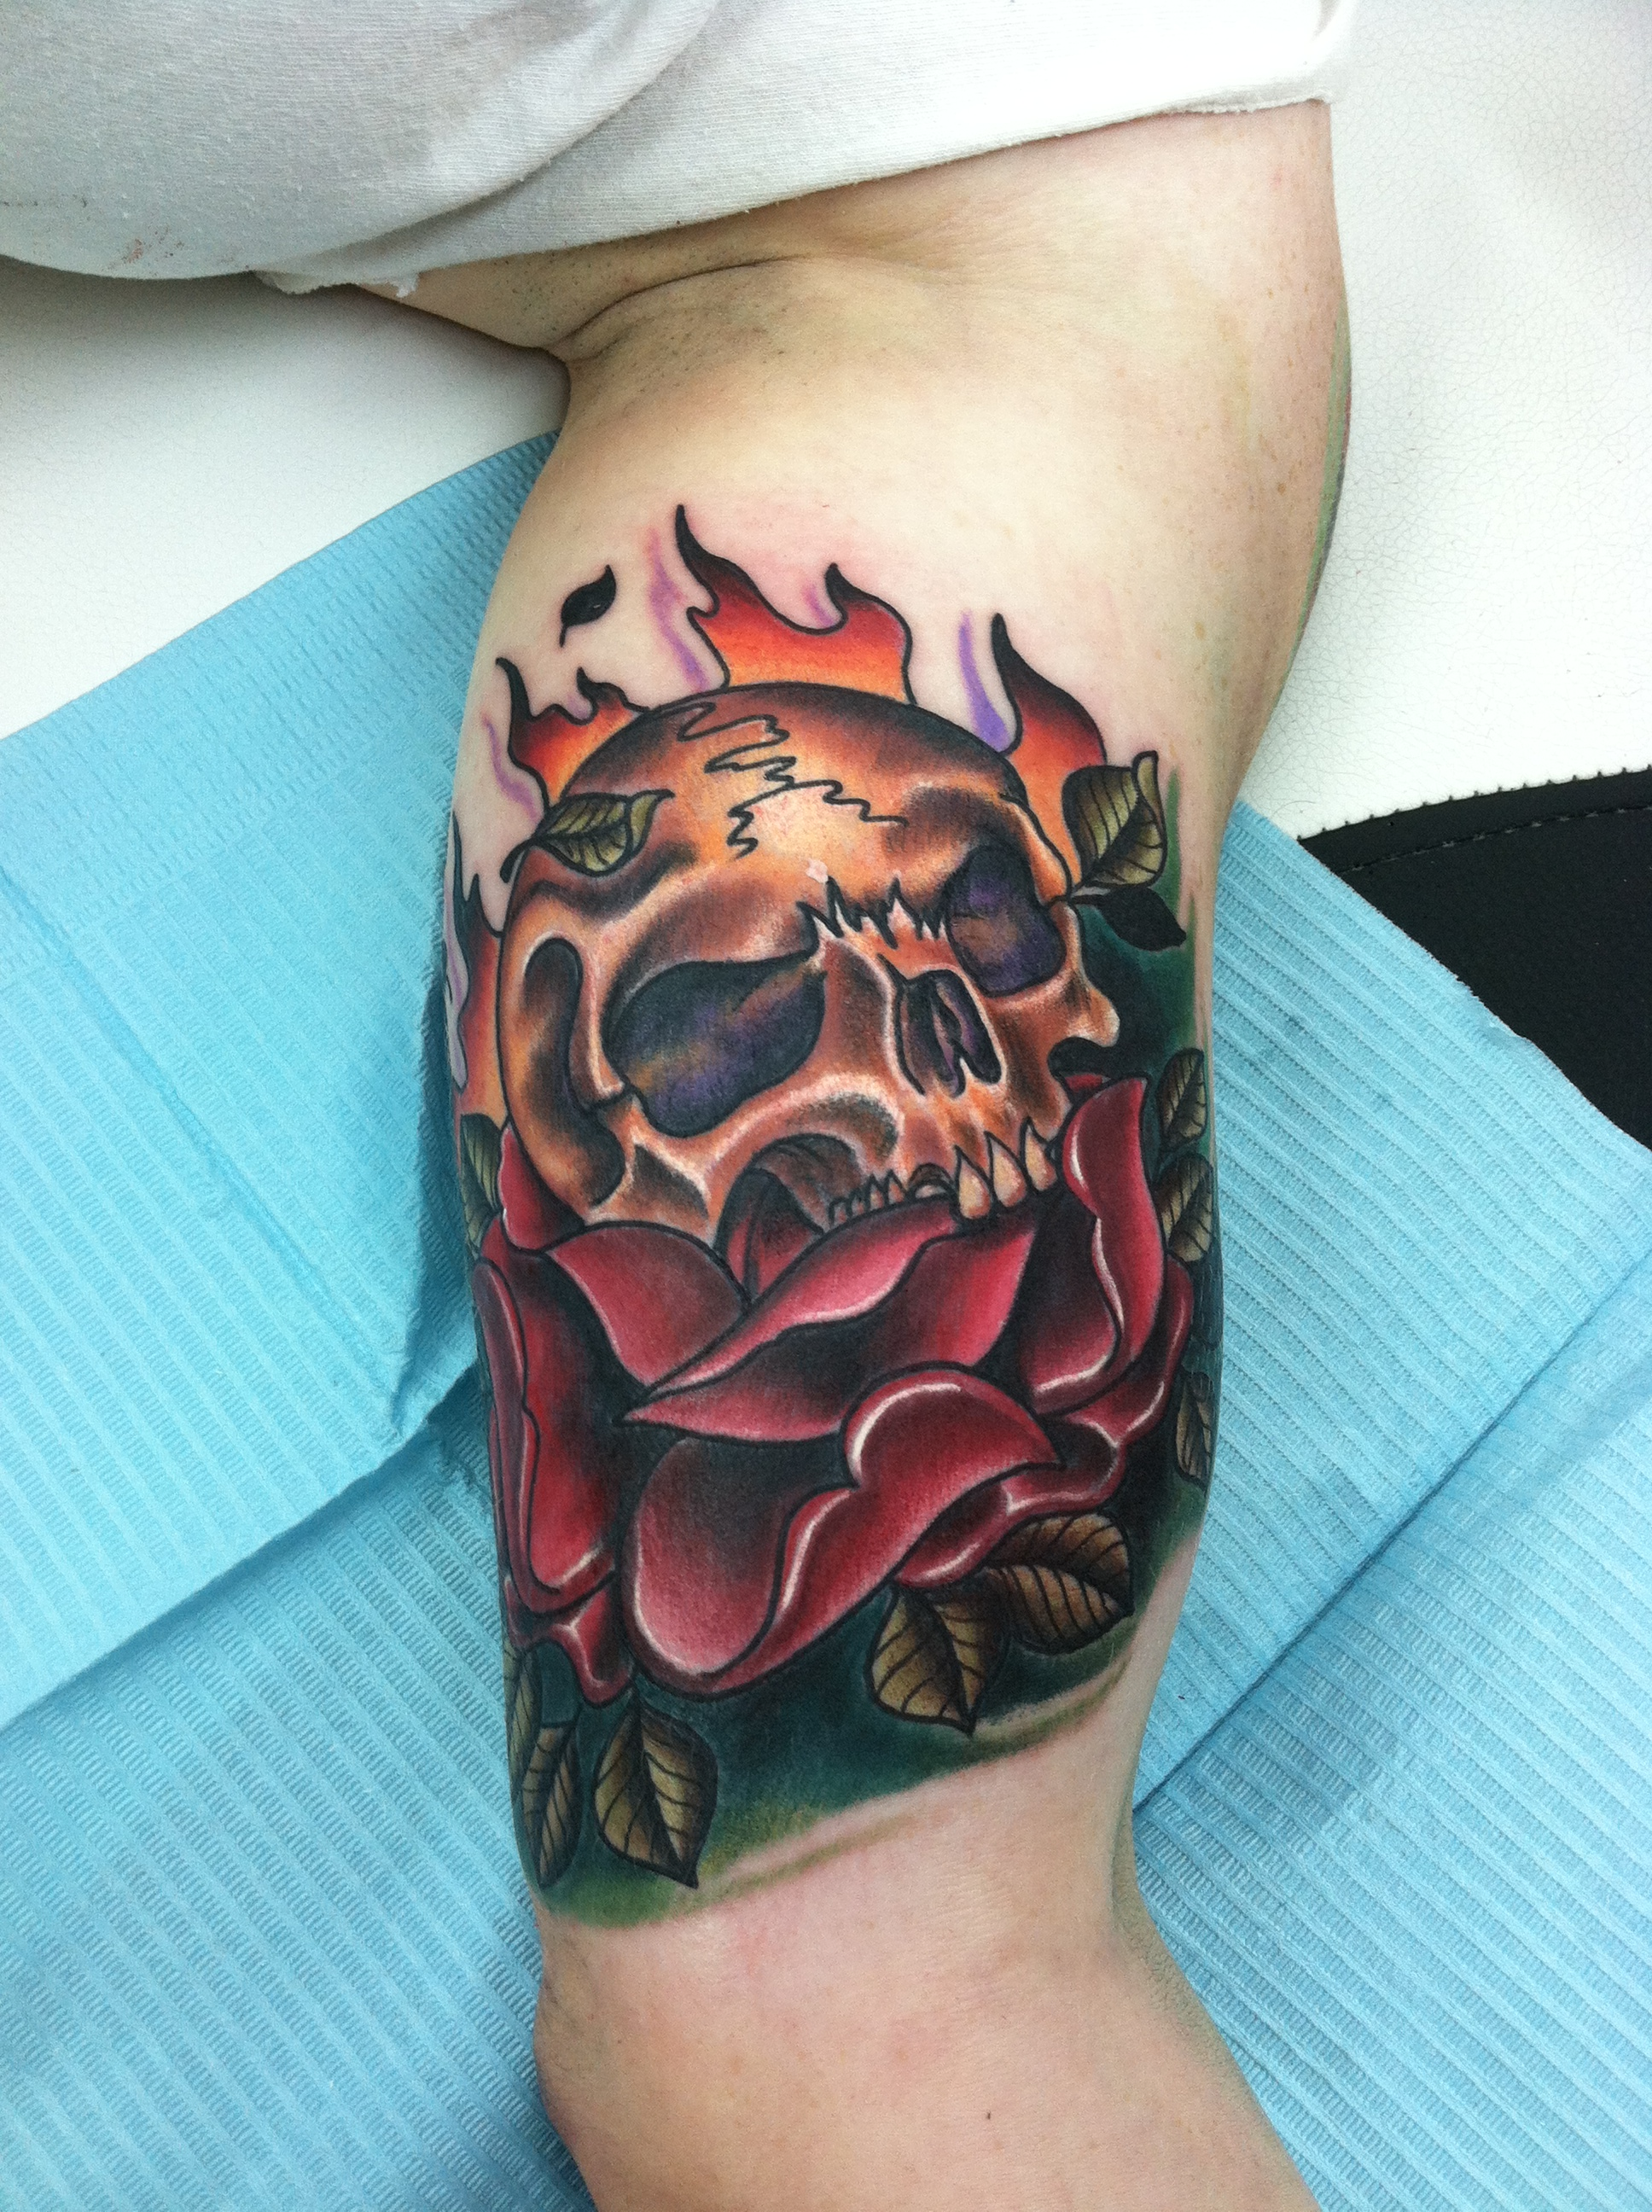 custom tattoos - David Meek Tattoos